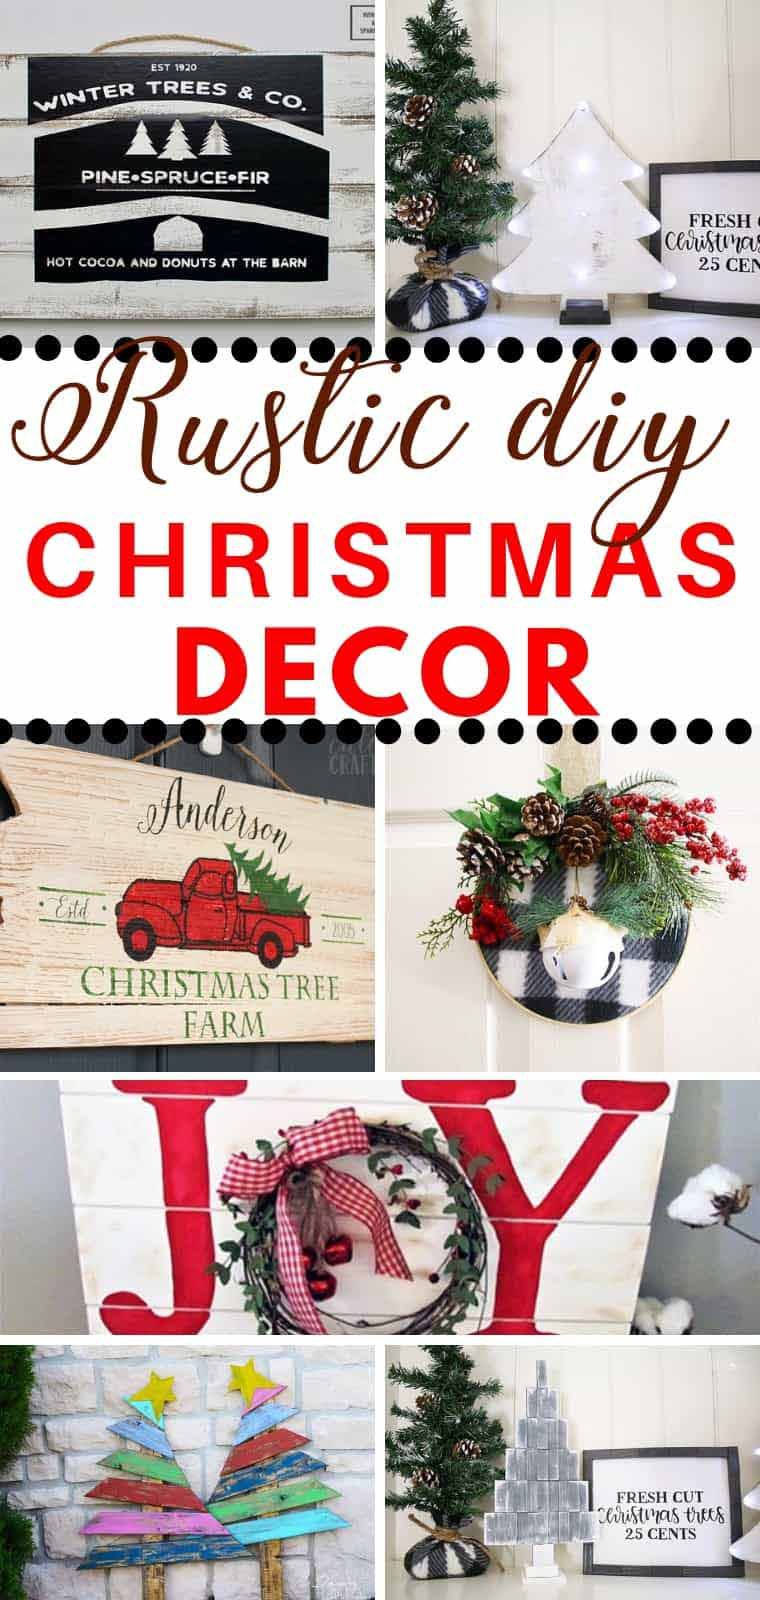 17 Rustic Christmas Decoration Ideas For Indoors And Outdoors To Give Your  Home A Cozy Farmhouse